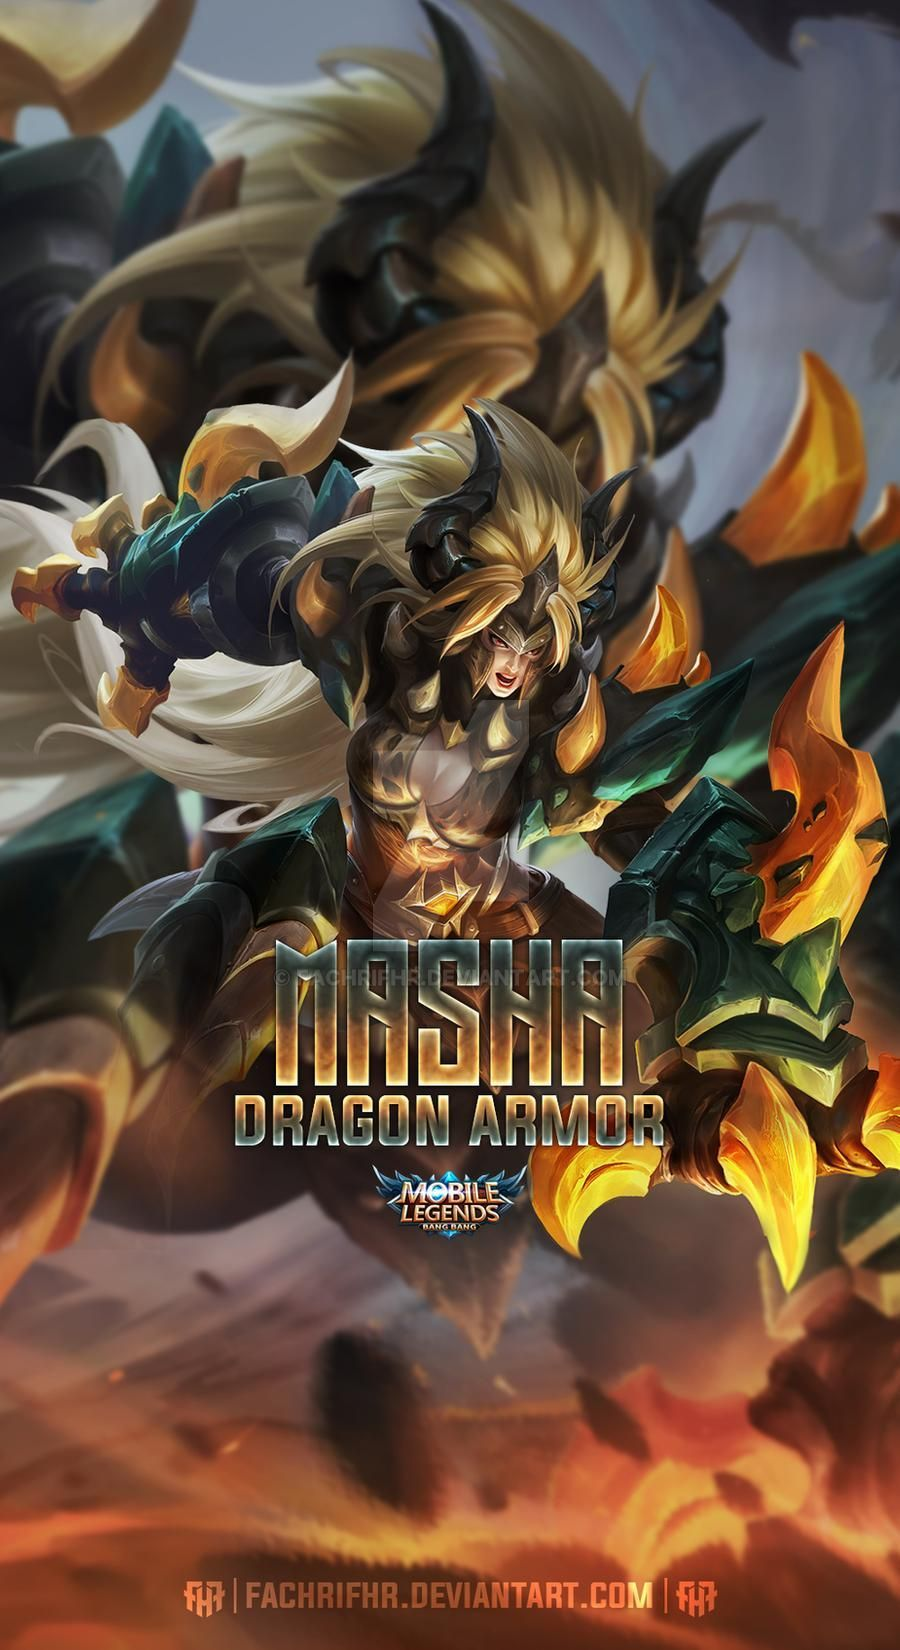 Masha Dragon Armor By Fachrifhr On Deviantart In 2020 Dragon Armor Mobile Legend Wallpaper Alucard Mobile Legends Artwork, knight, dragon, armor hd wallpaper posted in fantasy wallpapers category and wallpaper original resolution is 2542x1422 px. masha dragon armor by fachrifhr on